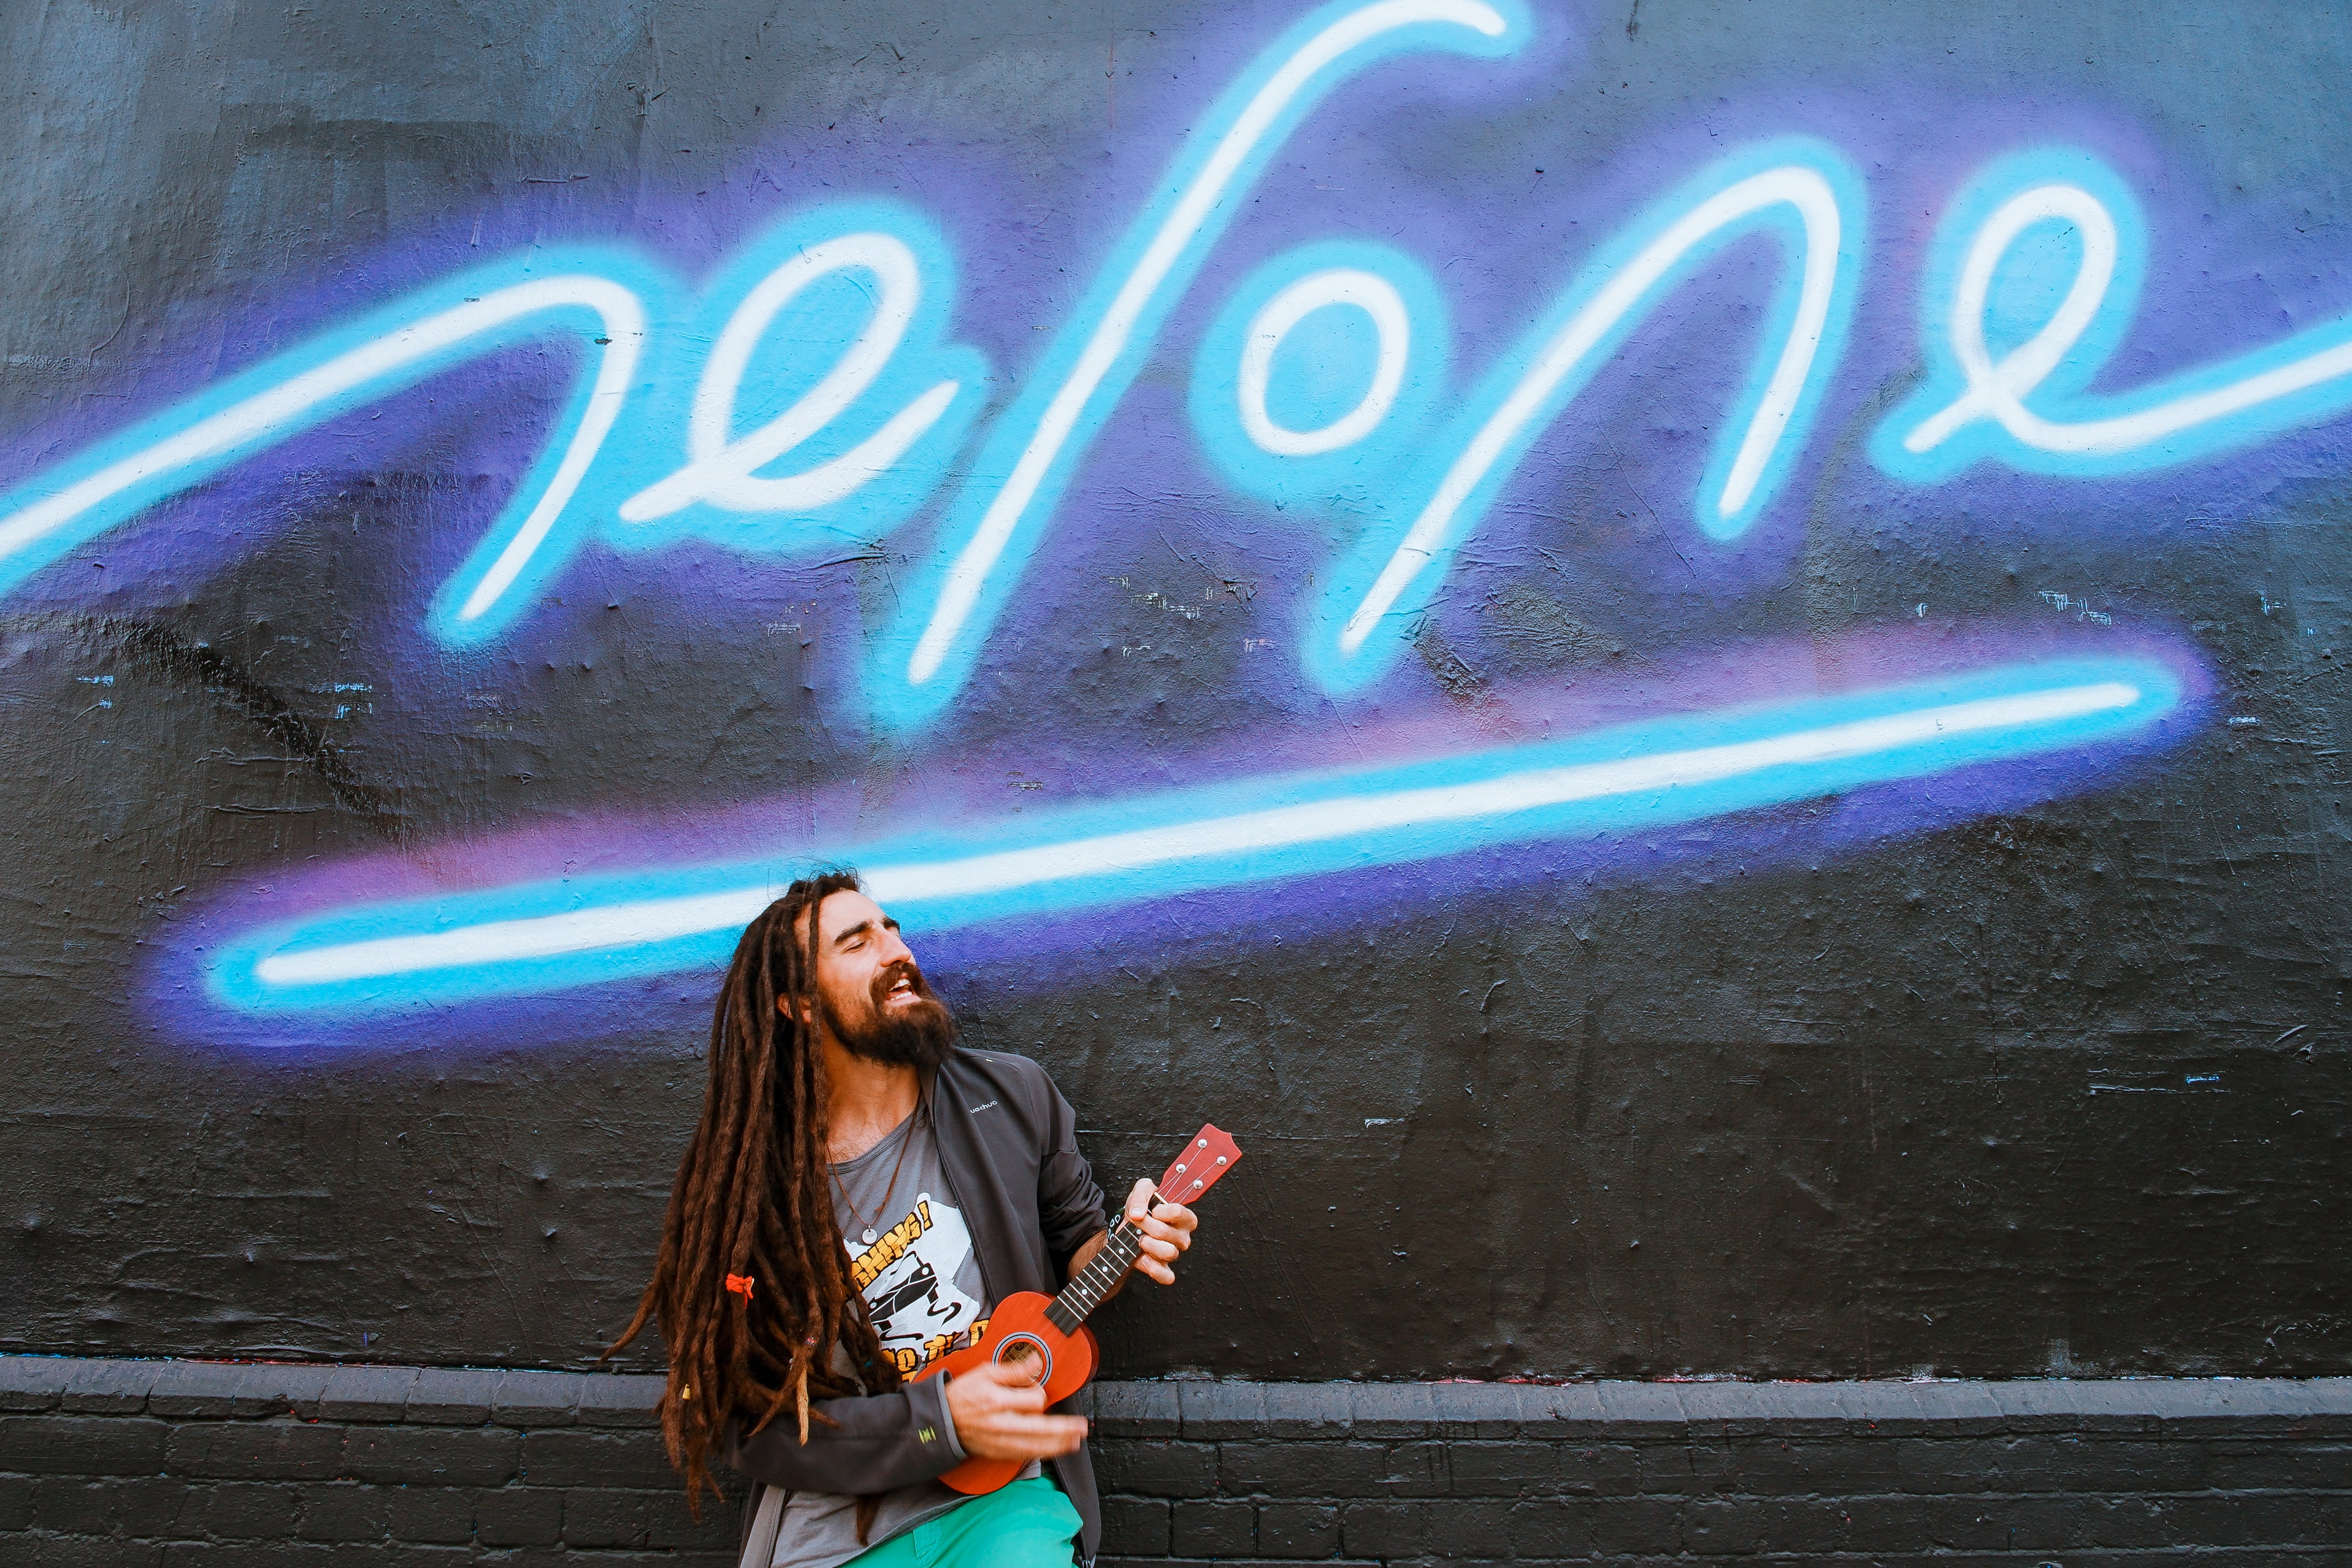 Bright blue graffiti typography on wall with man in dreadlocks performing on red ukulele in London